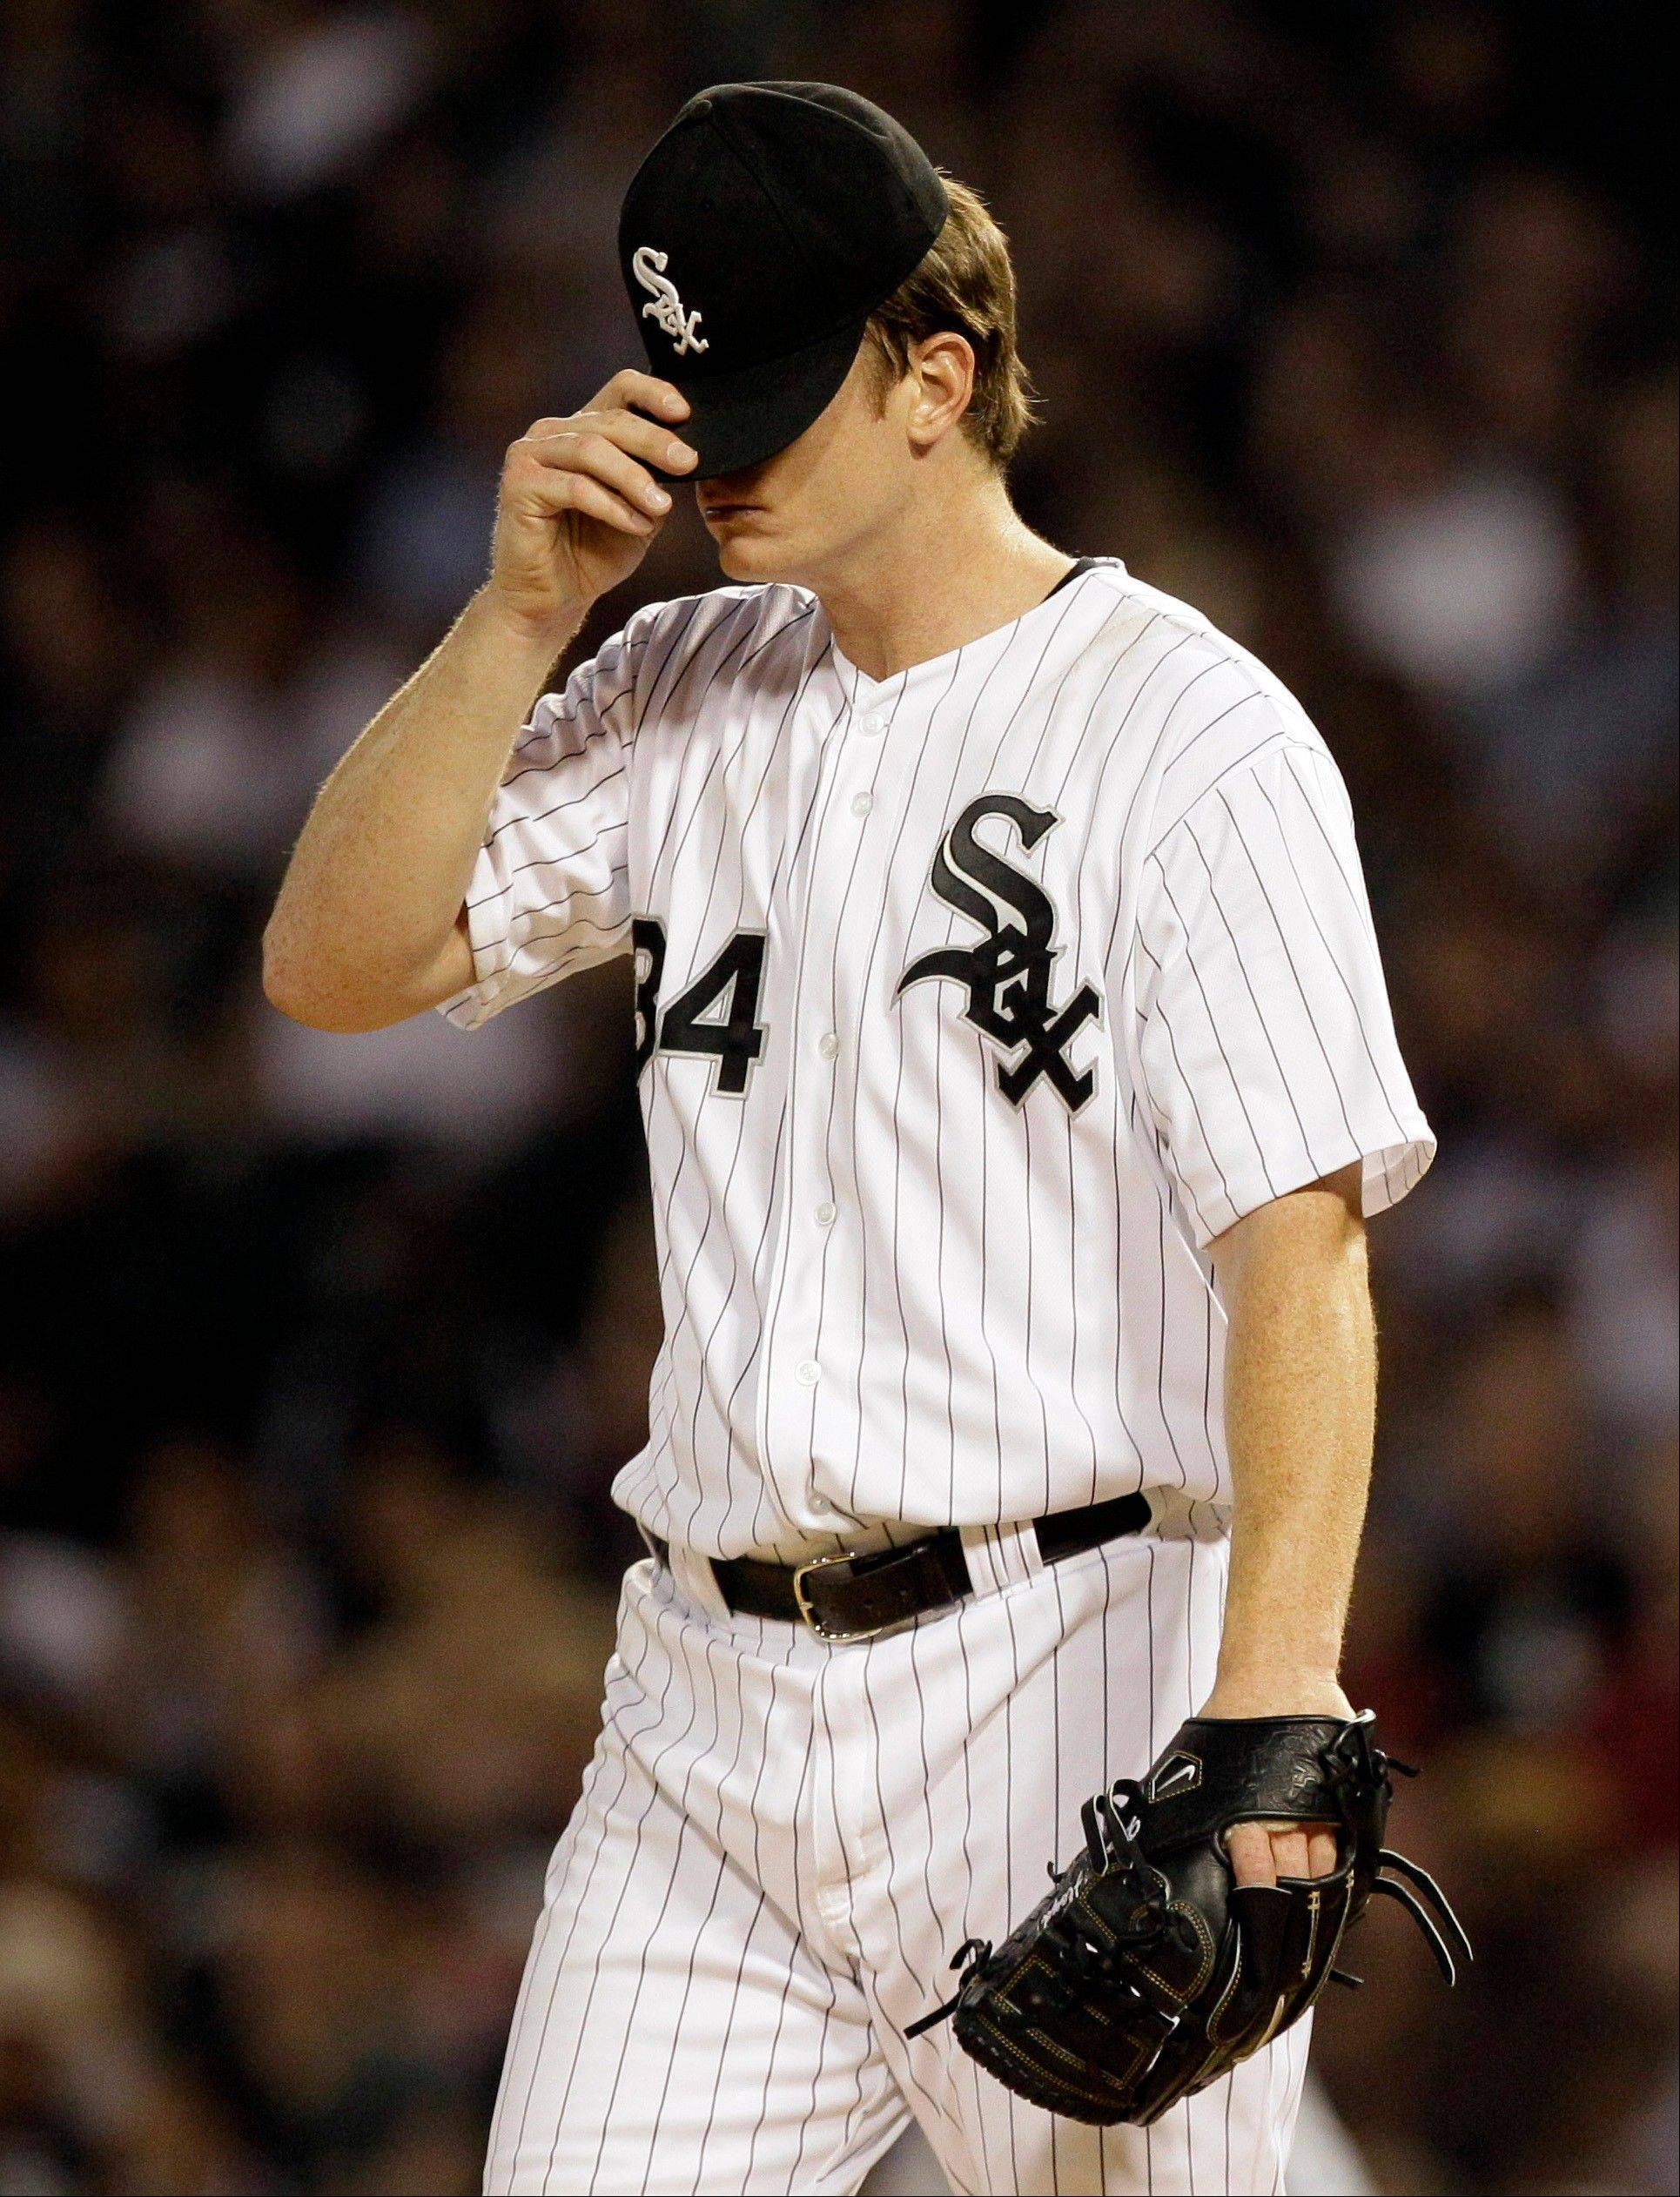 White Sox starter Gavin Floyd is not sure how things are looking because he has been sidelined with arm pain.